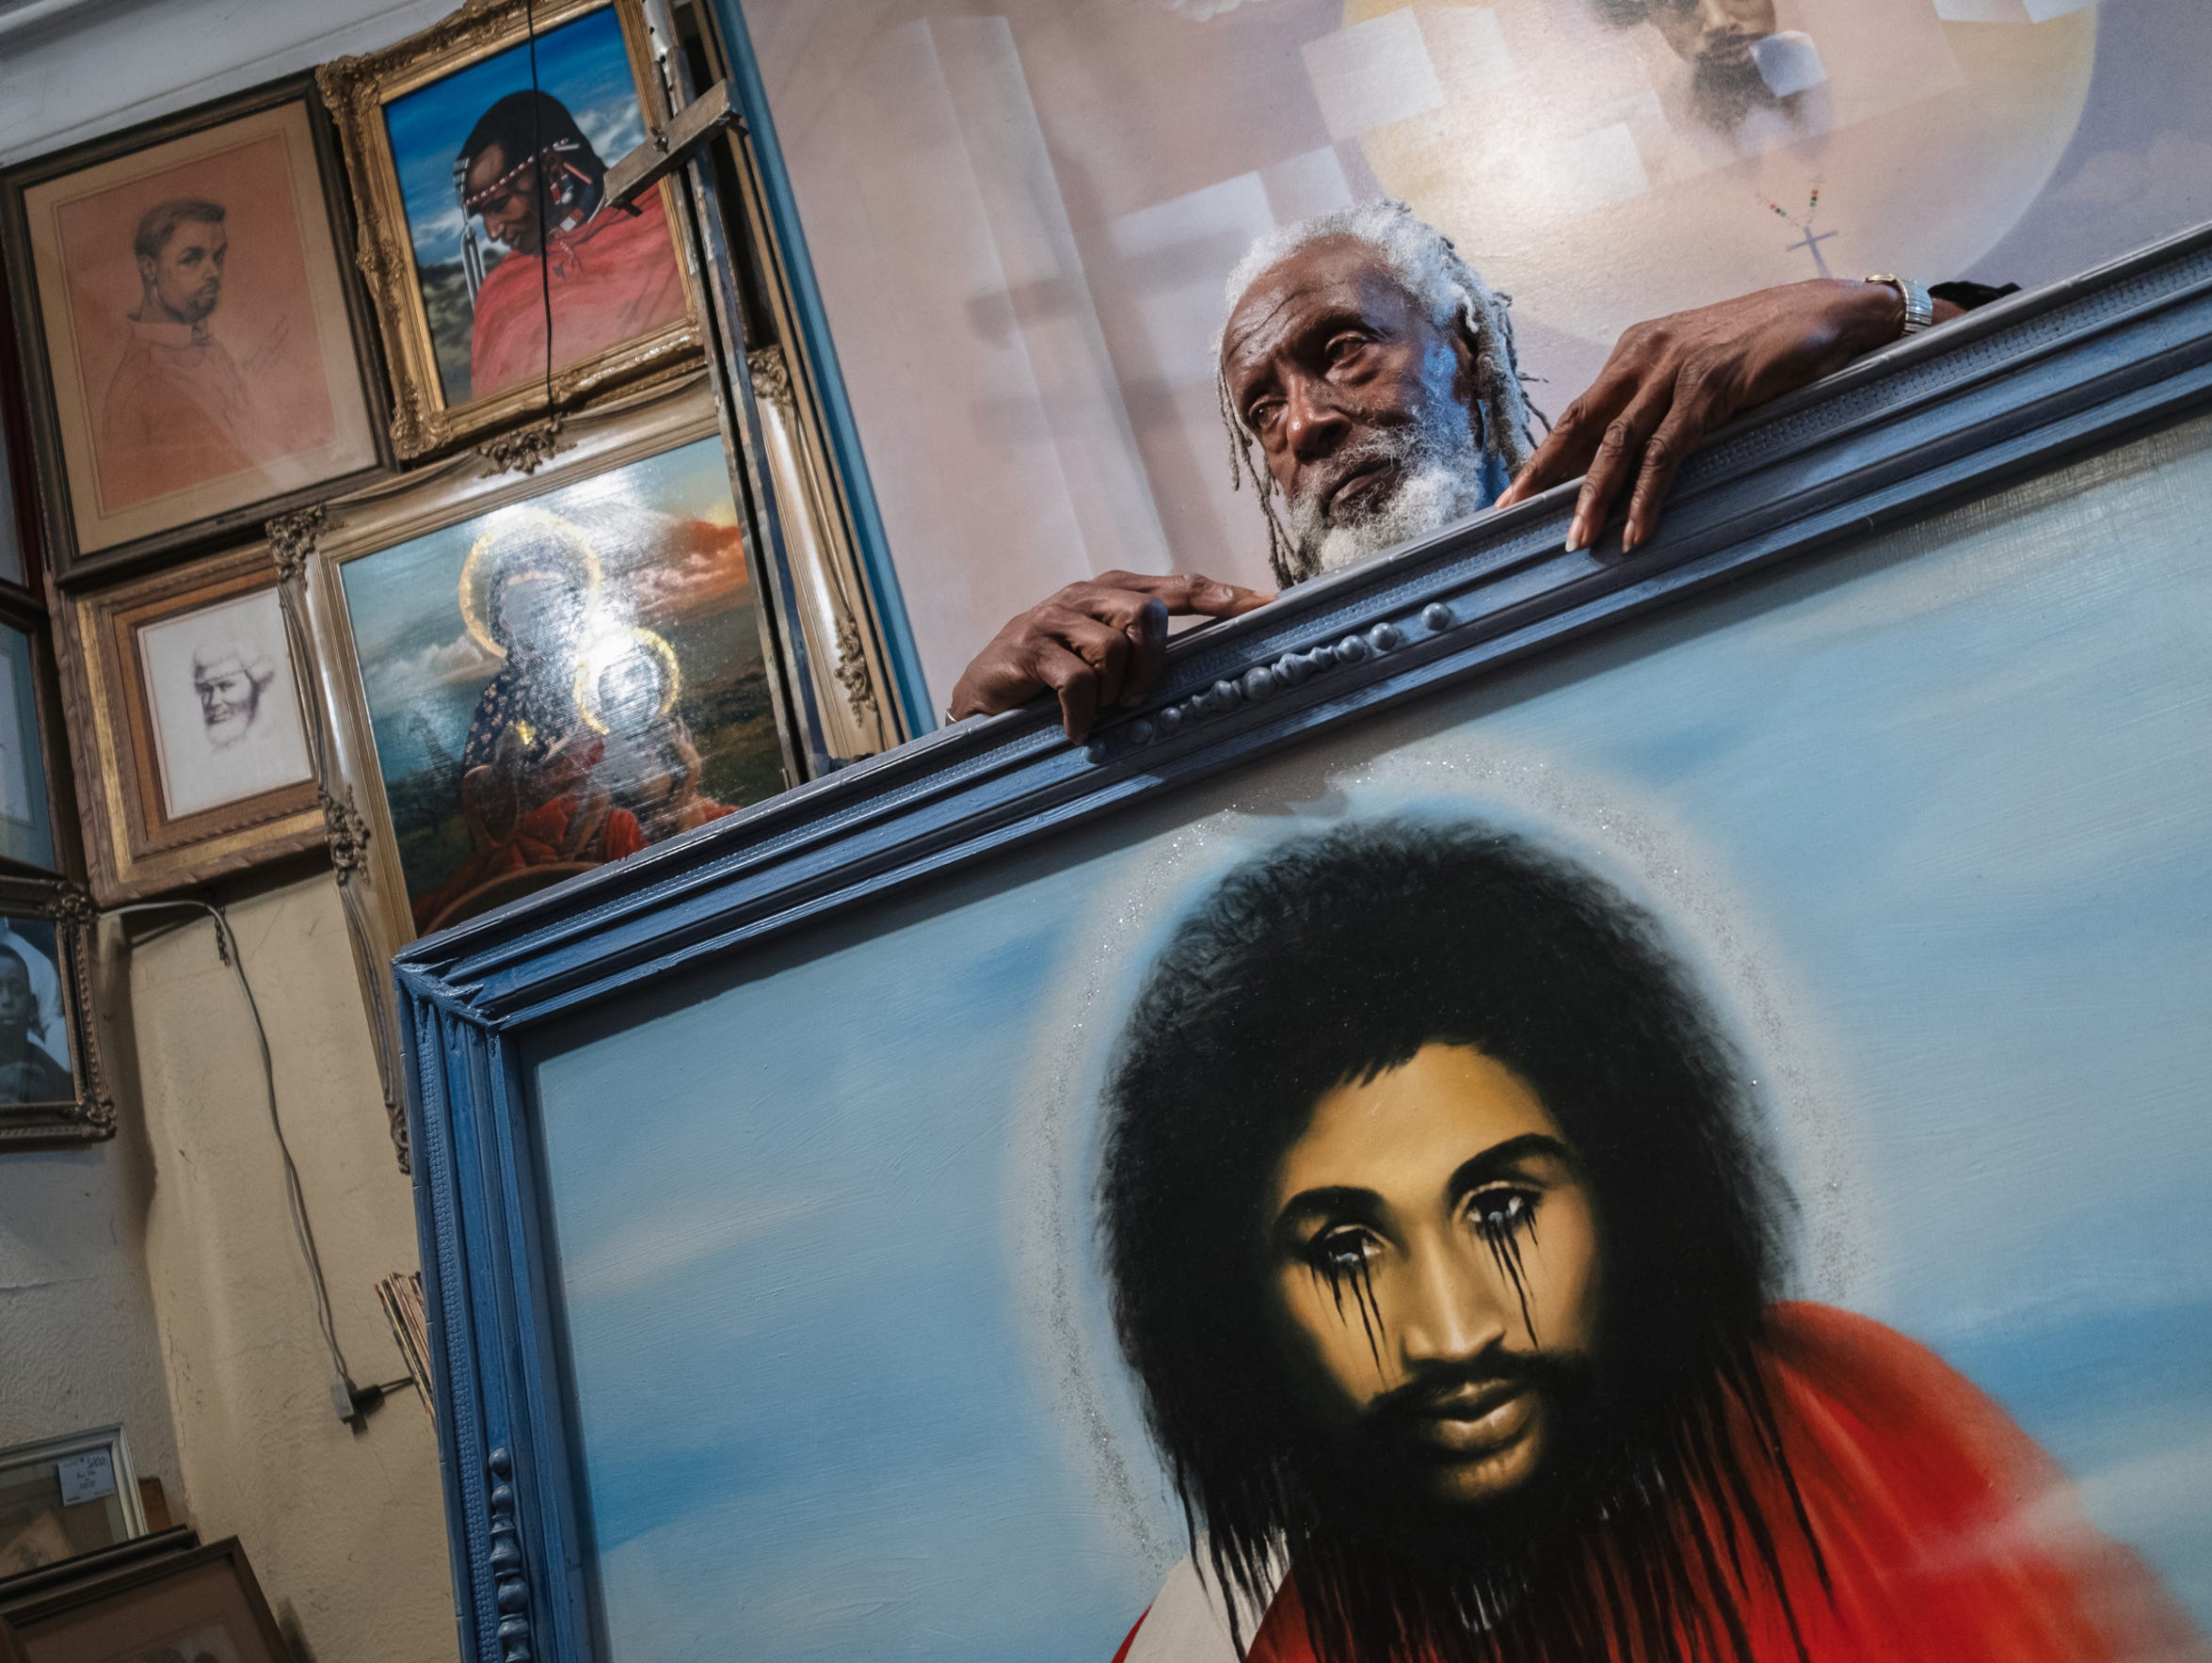 "Bennie White Jr. Ethiopia Israel of Detroit sits with a portrait of Malice Green he painted in his home in Detroit on Wednesday October 25, 2017. 'I didn't have any intention of painting his portrait,"" White Jr. Ethiopia Israel said of Malice Green who was beaten to death by Detroit Police Officers in 1992. The artist was inspired to paint a mural on an abandoned building that was defaced multiple times before being torn down after seeing the building that Green was killed in front of and his blood in the street with a little red rose as a token of love for him."